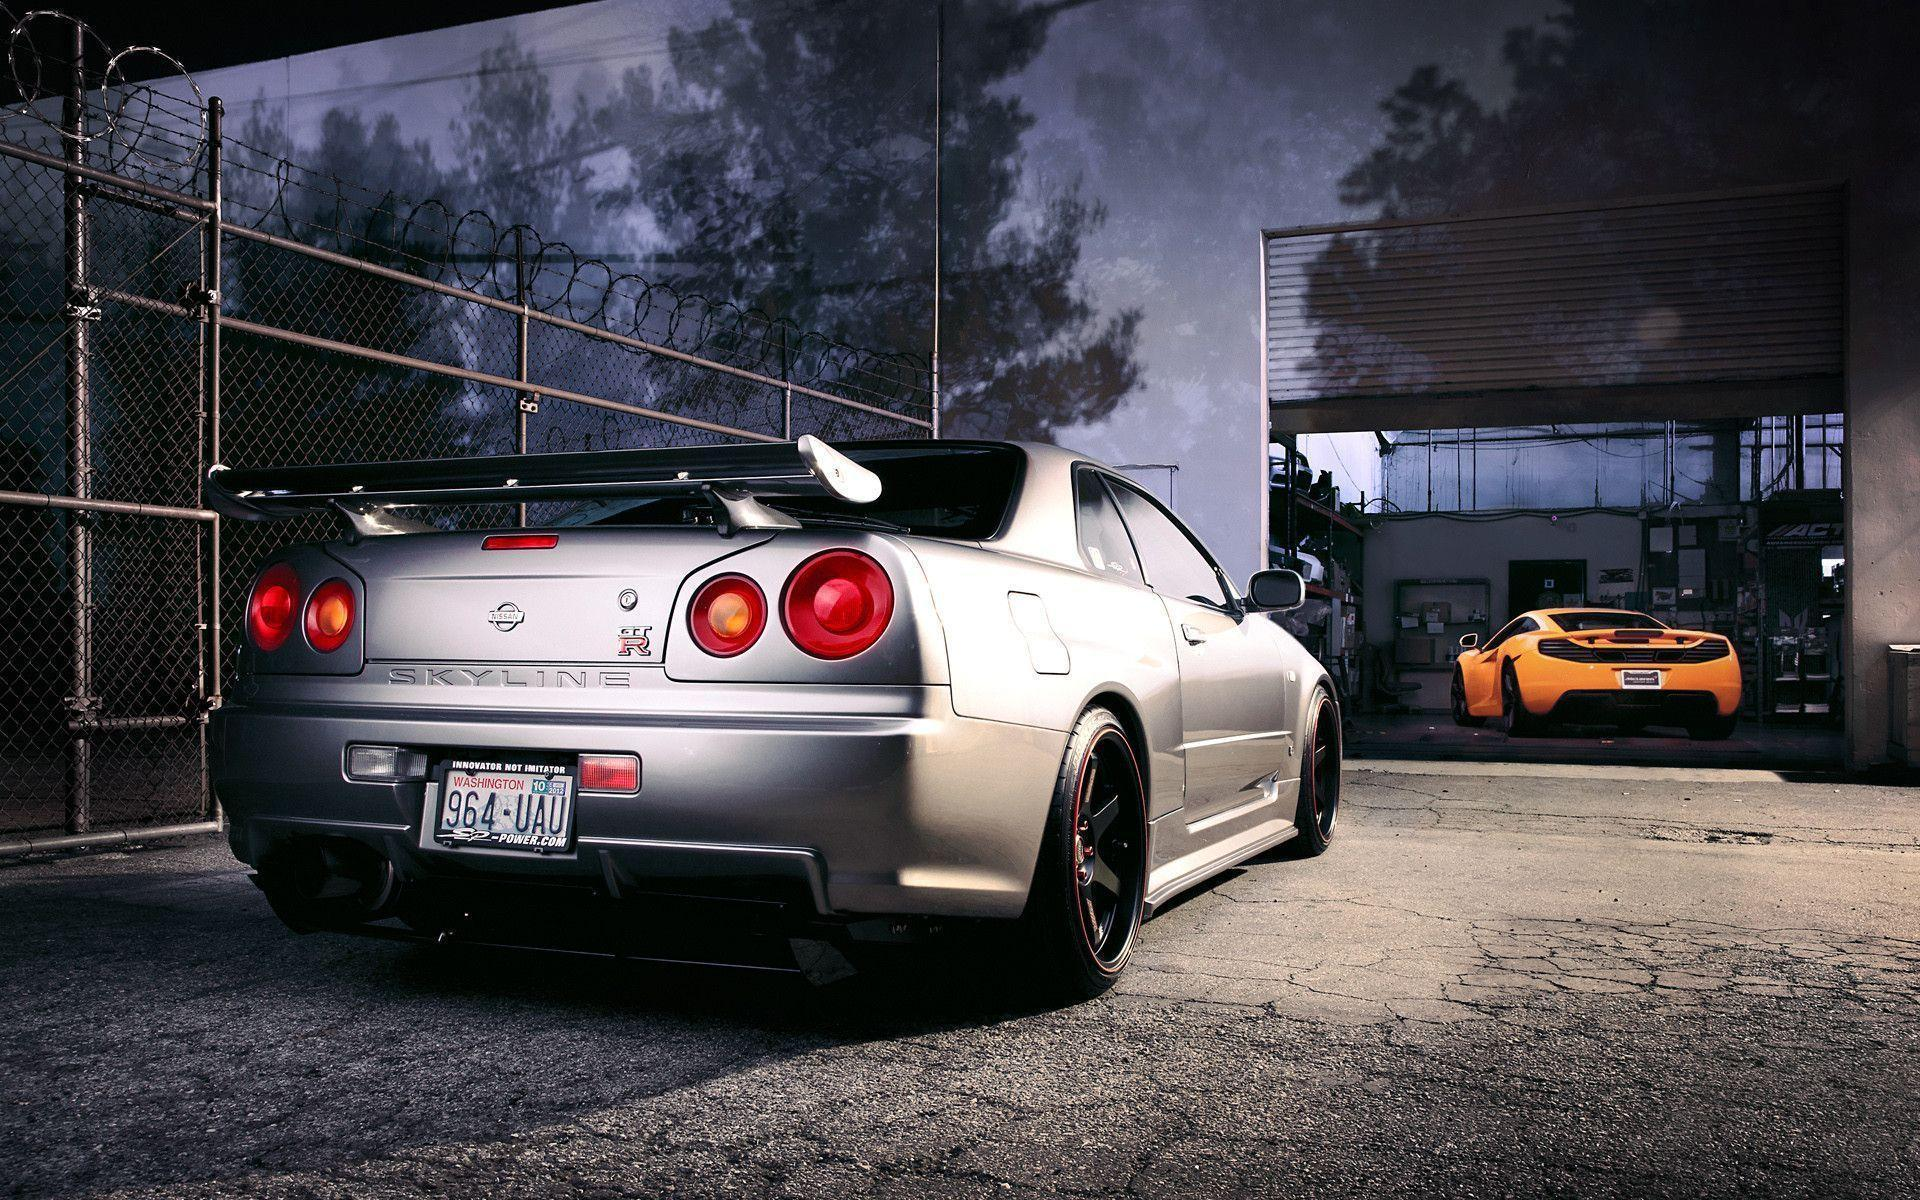 Nissan R34 Skyline GT R Pictures | Car HD Wallpapers